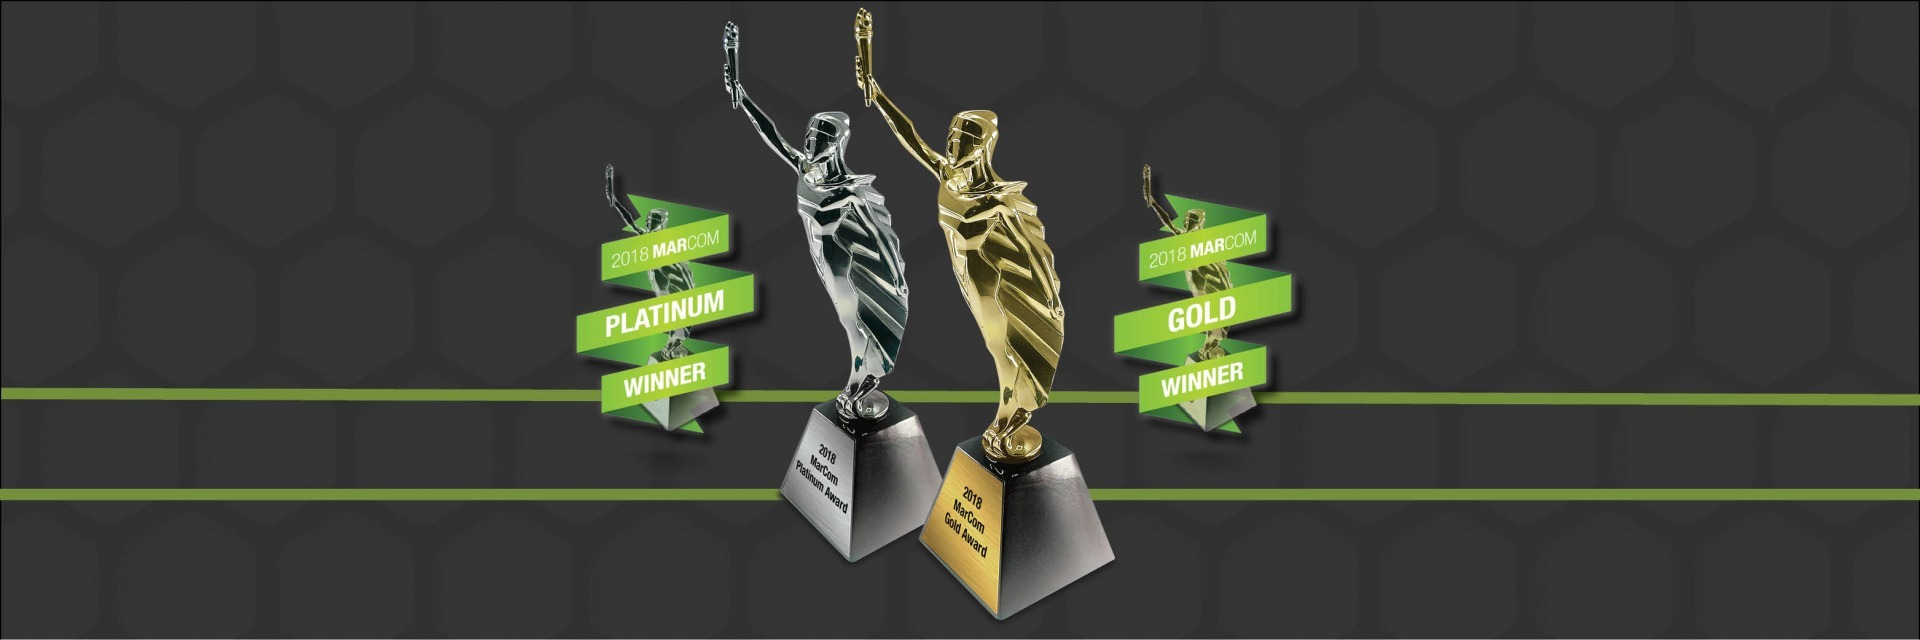 FiG Takes Home 4 MarCom Awards